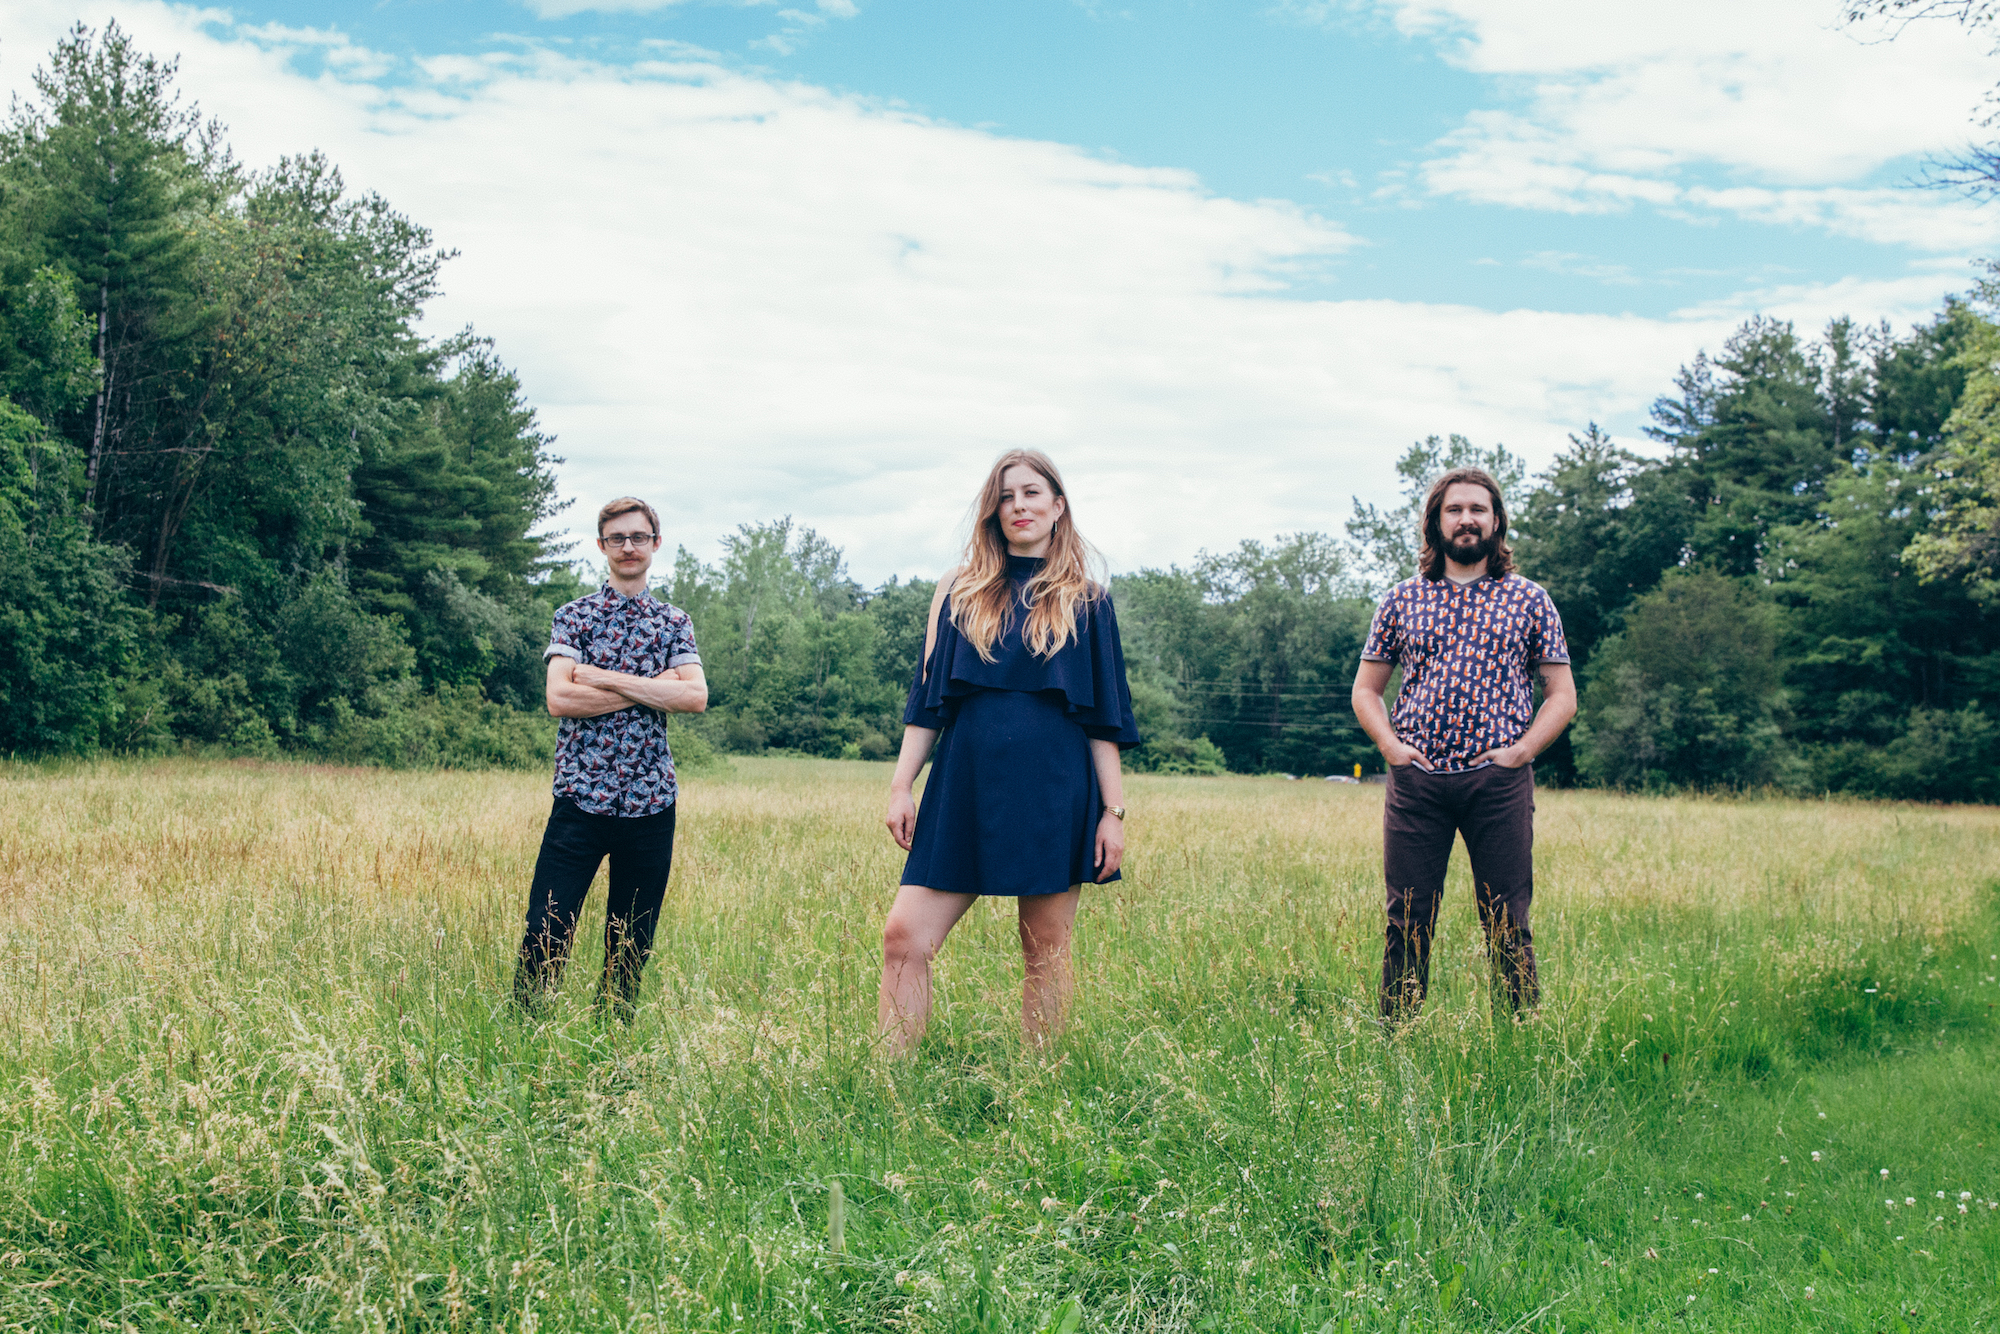 Folk-Pop Trio Explores Road Trip Gone Awry